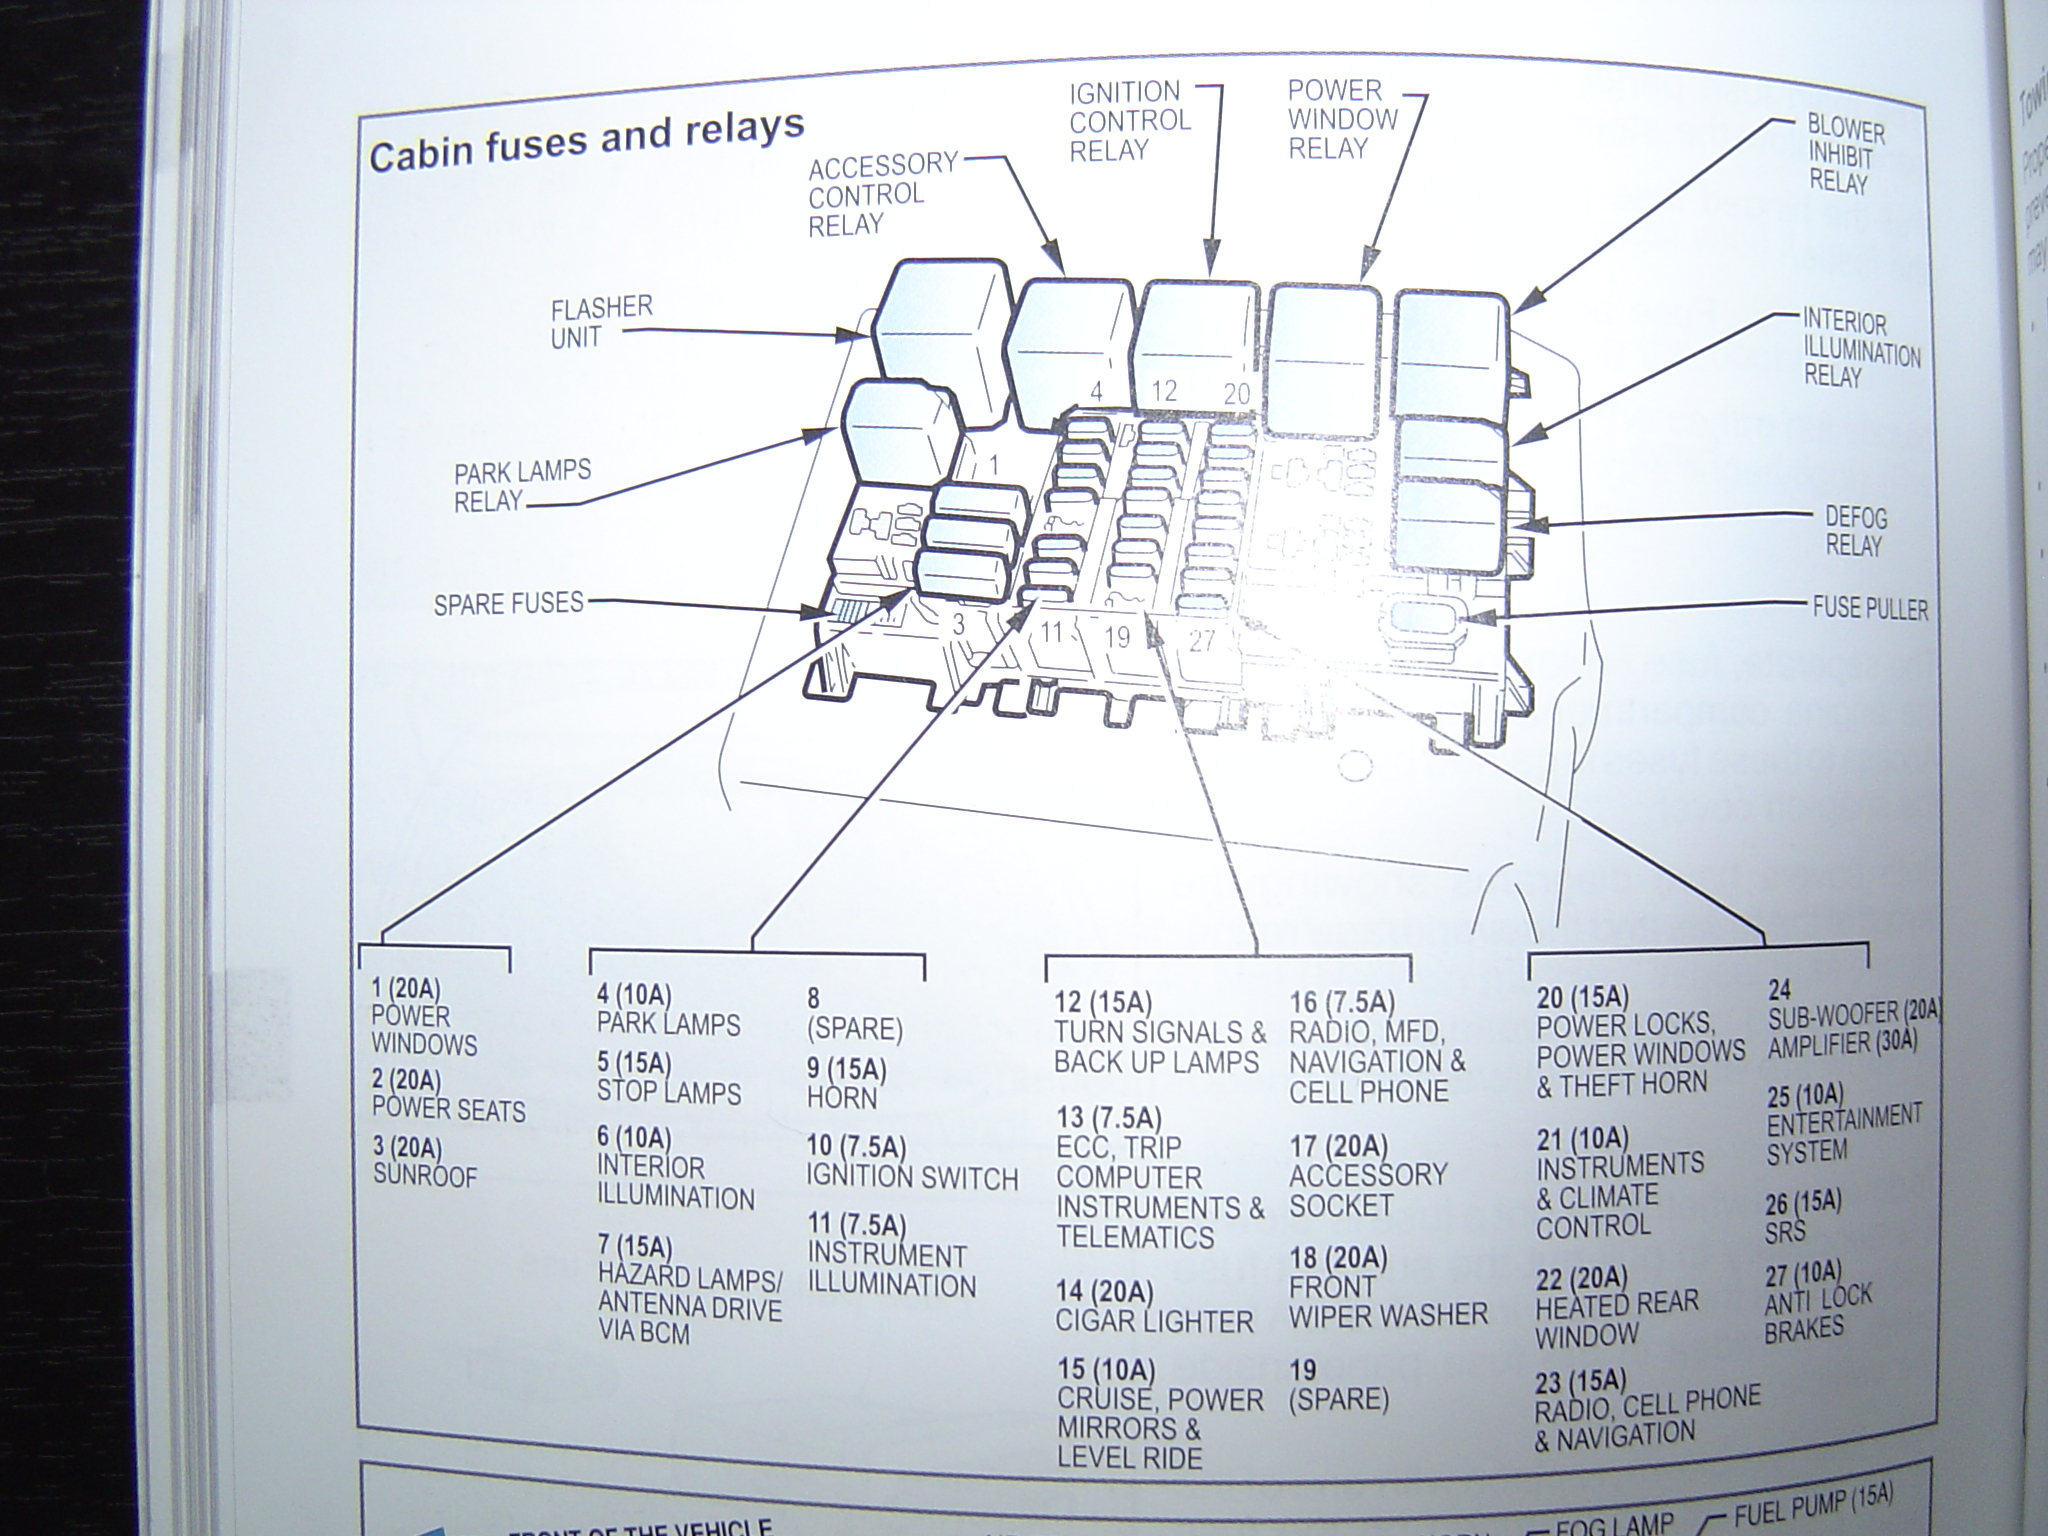 VY_CABIN_FUSEBOX cabin fuse box diagrams ba bf vx vy vz ve vx commodore fuse box diagram at reclaimingppi.co